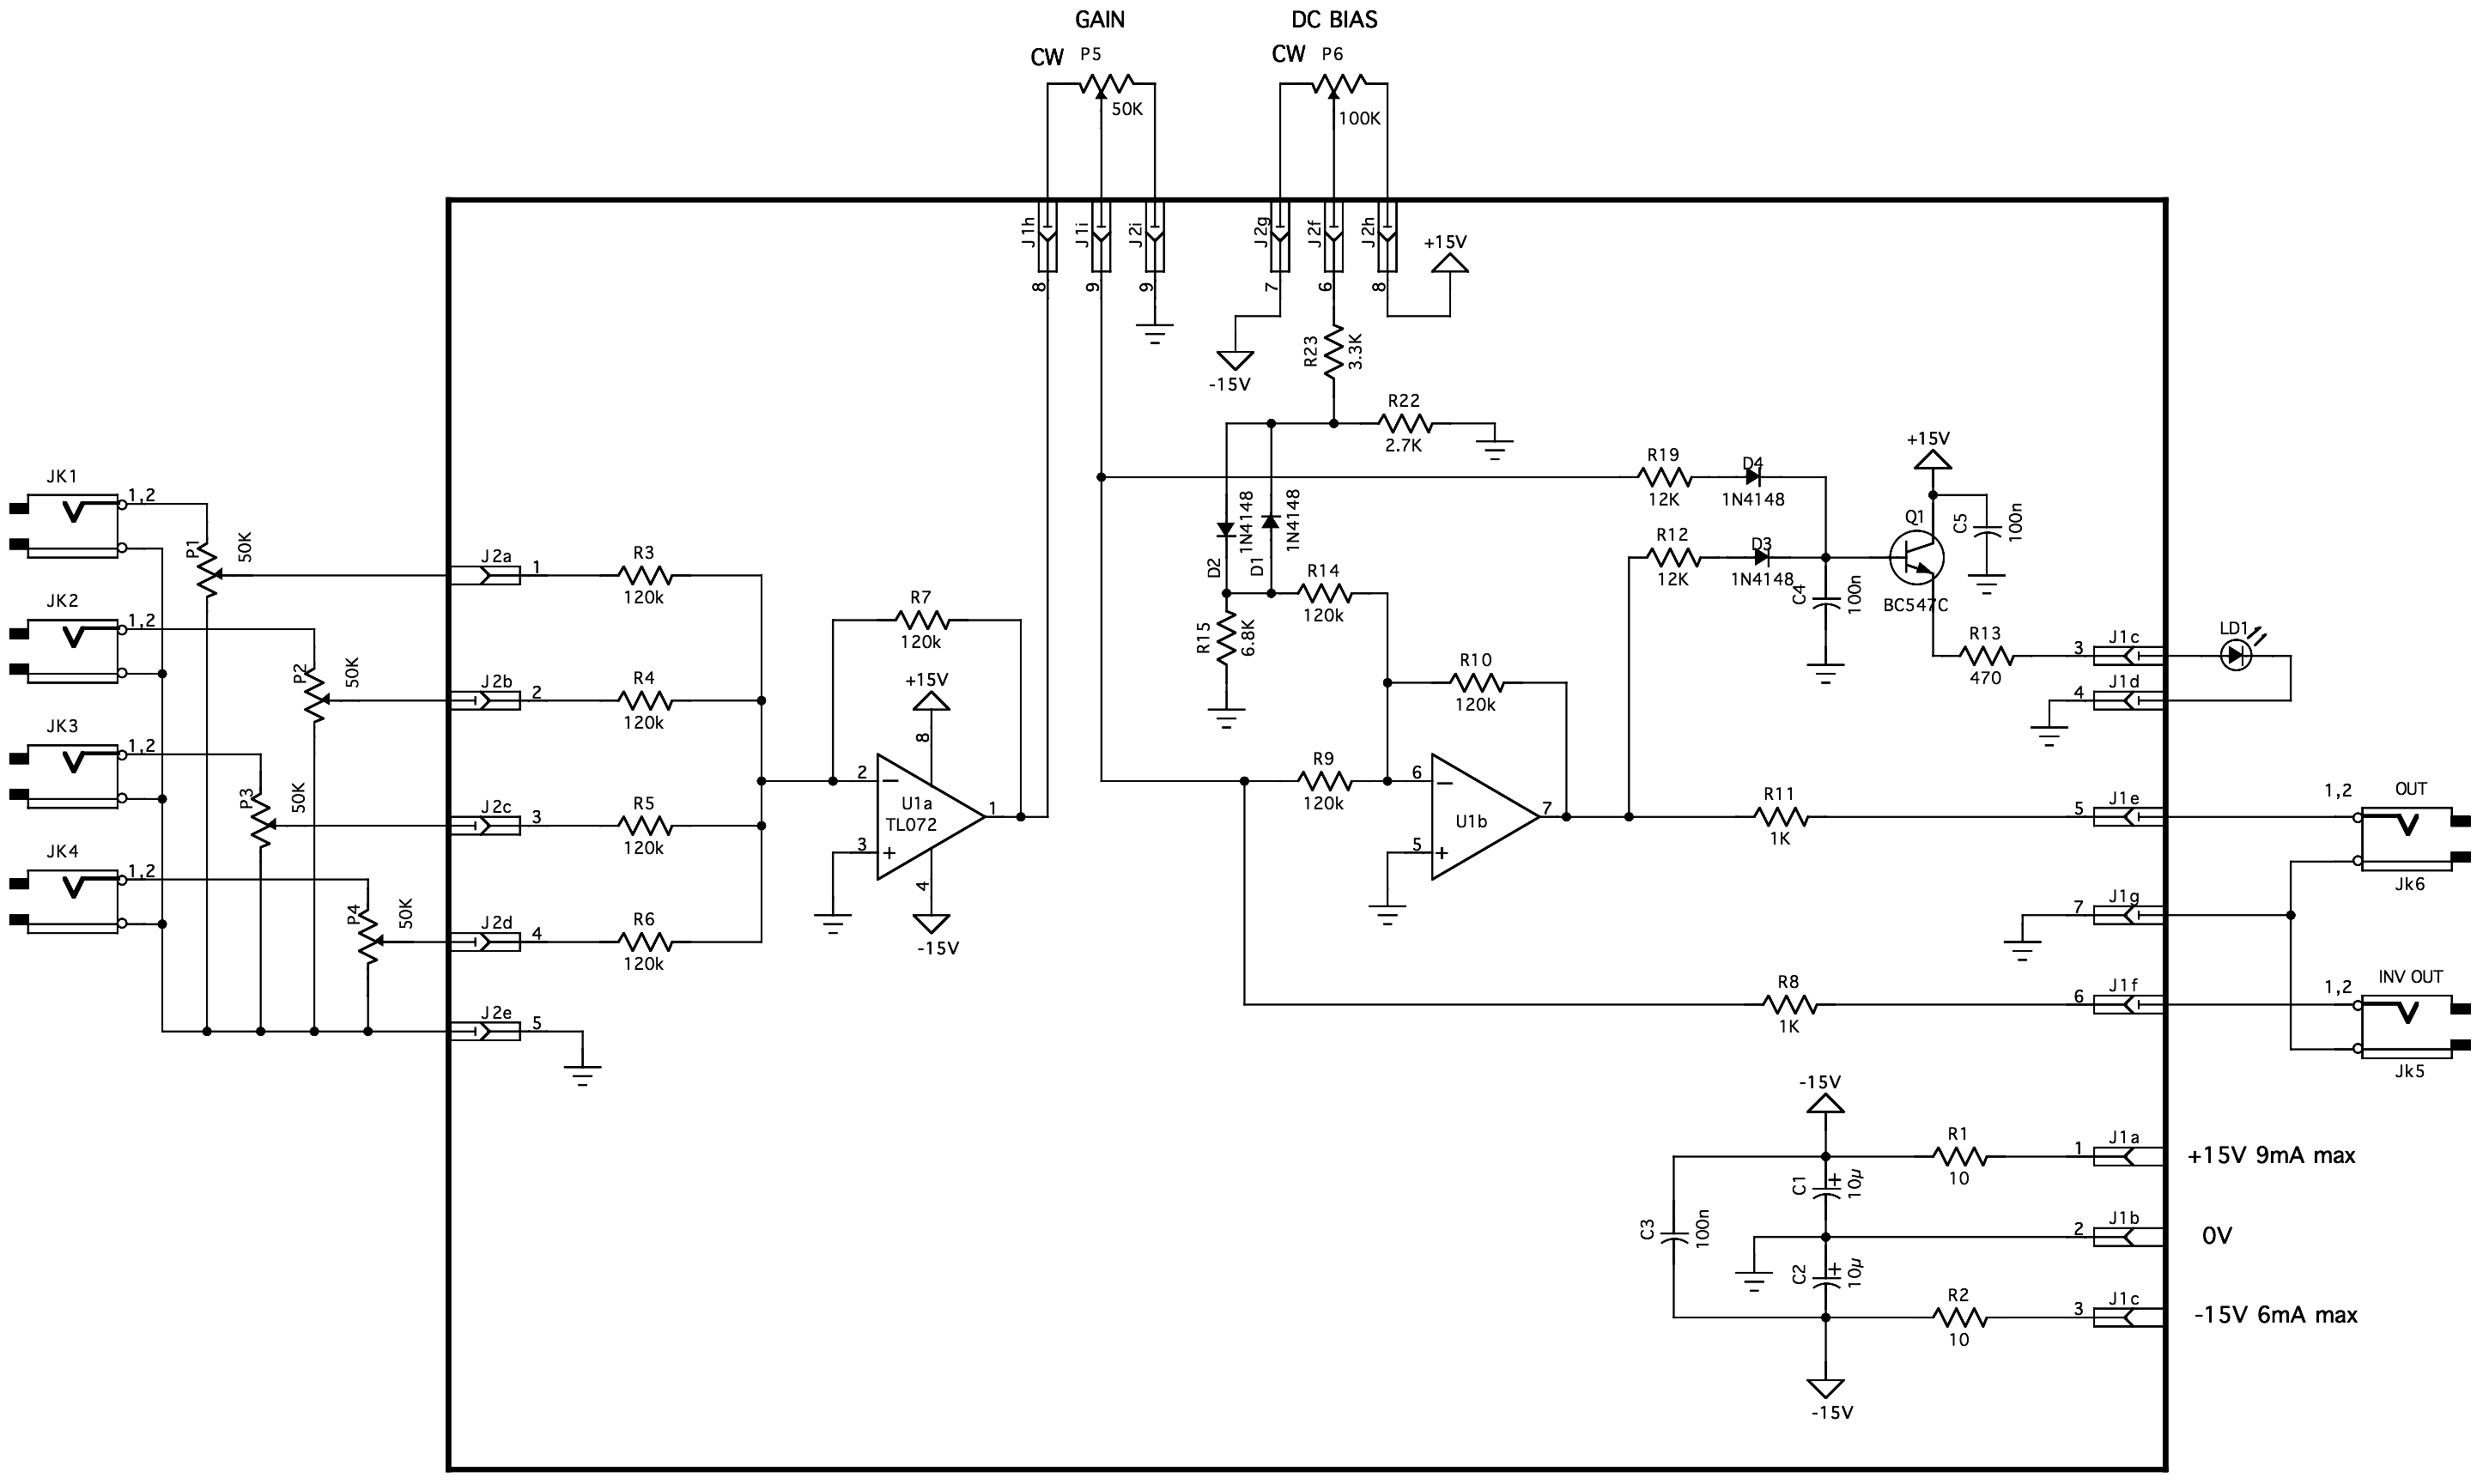 Mixer 1u Basic Circuit This Is Based On Very Building Blocks U1a A Summer Inverter That Sums Up The Input Signals U2a Acts As Simple